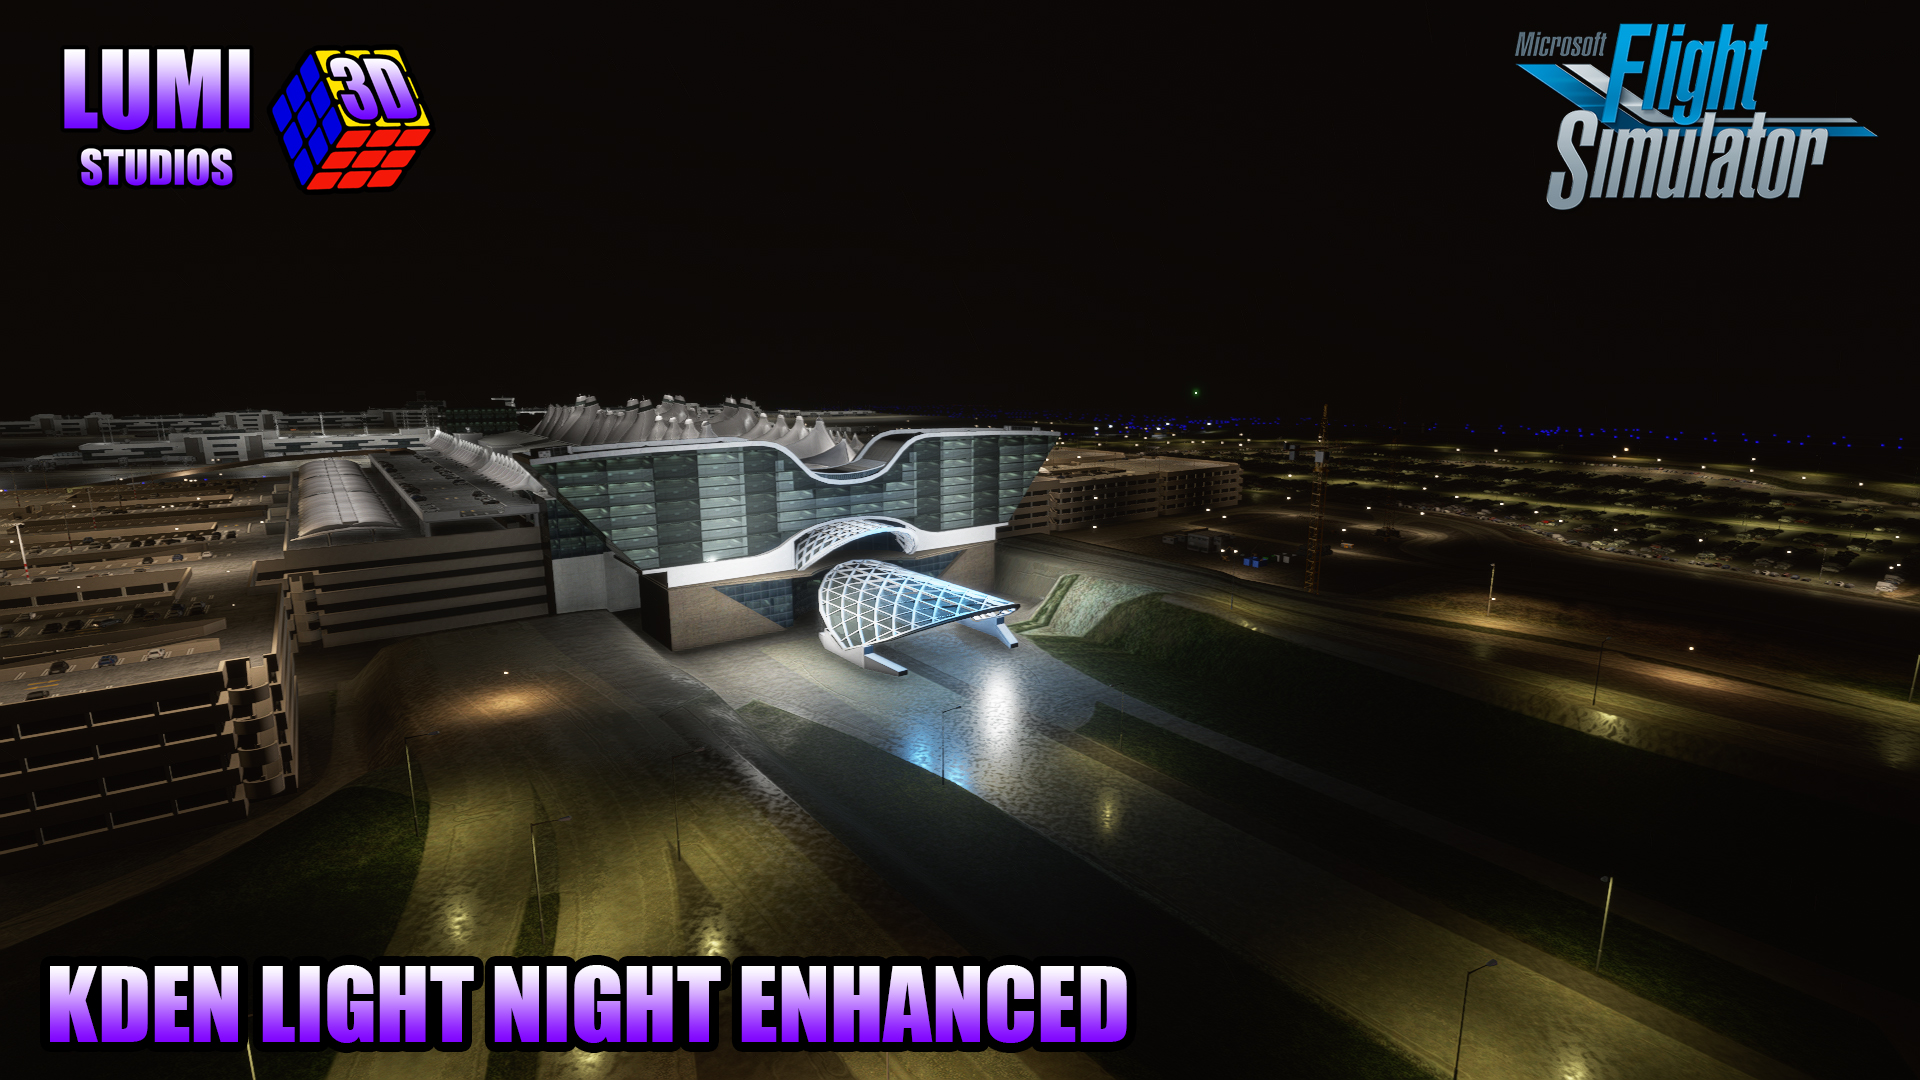 LUMI 3D STUDIOS - DENVER INTERNATIONAL AIRPORT LIGHT NIGHT ENHANCED MSFS